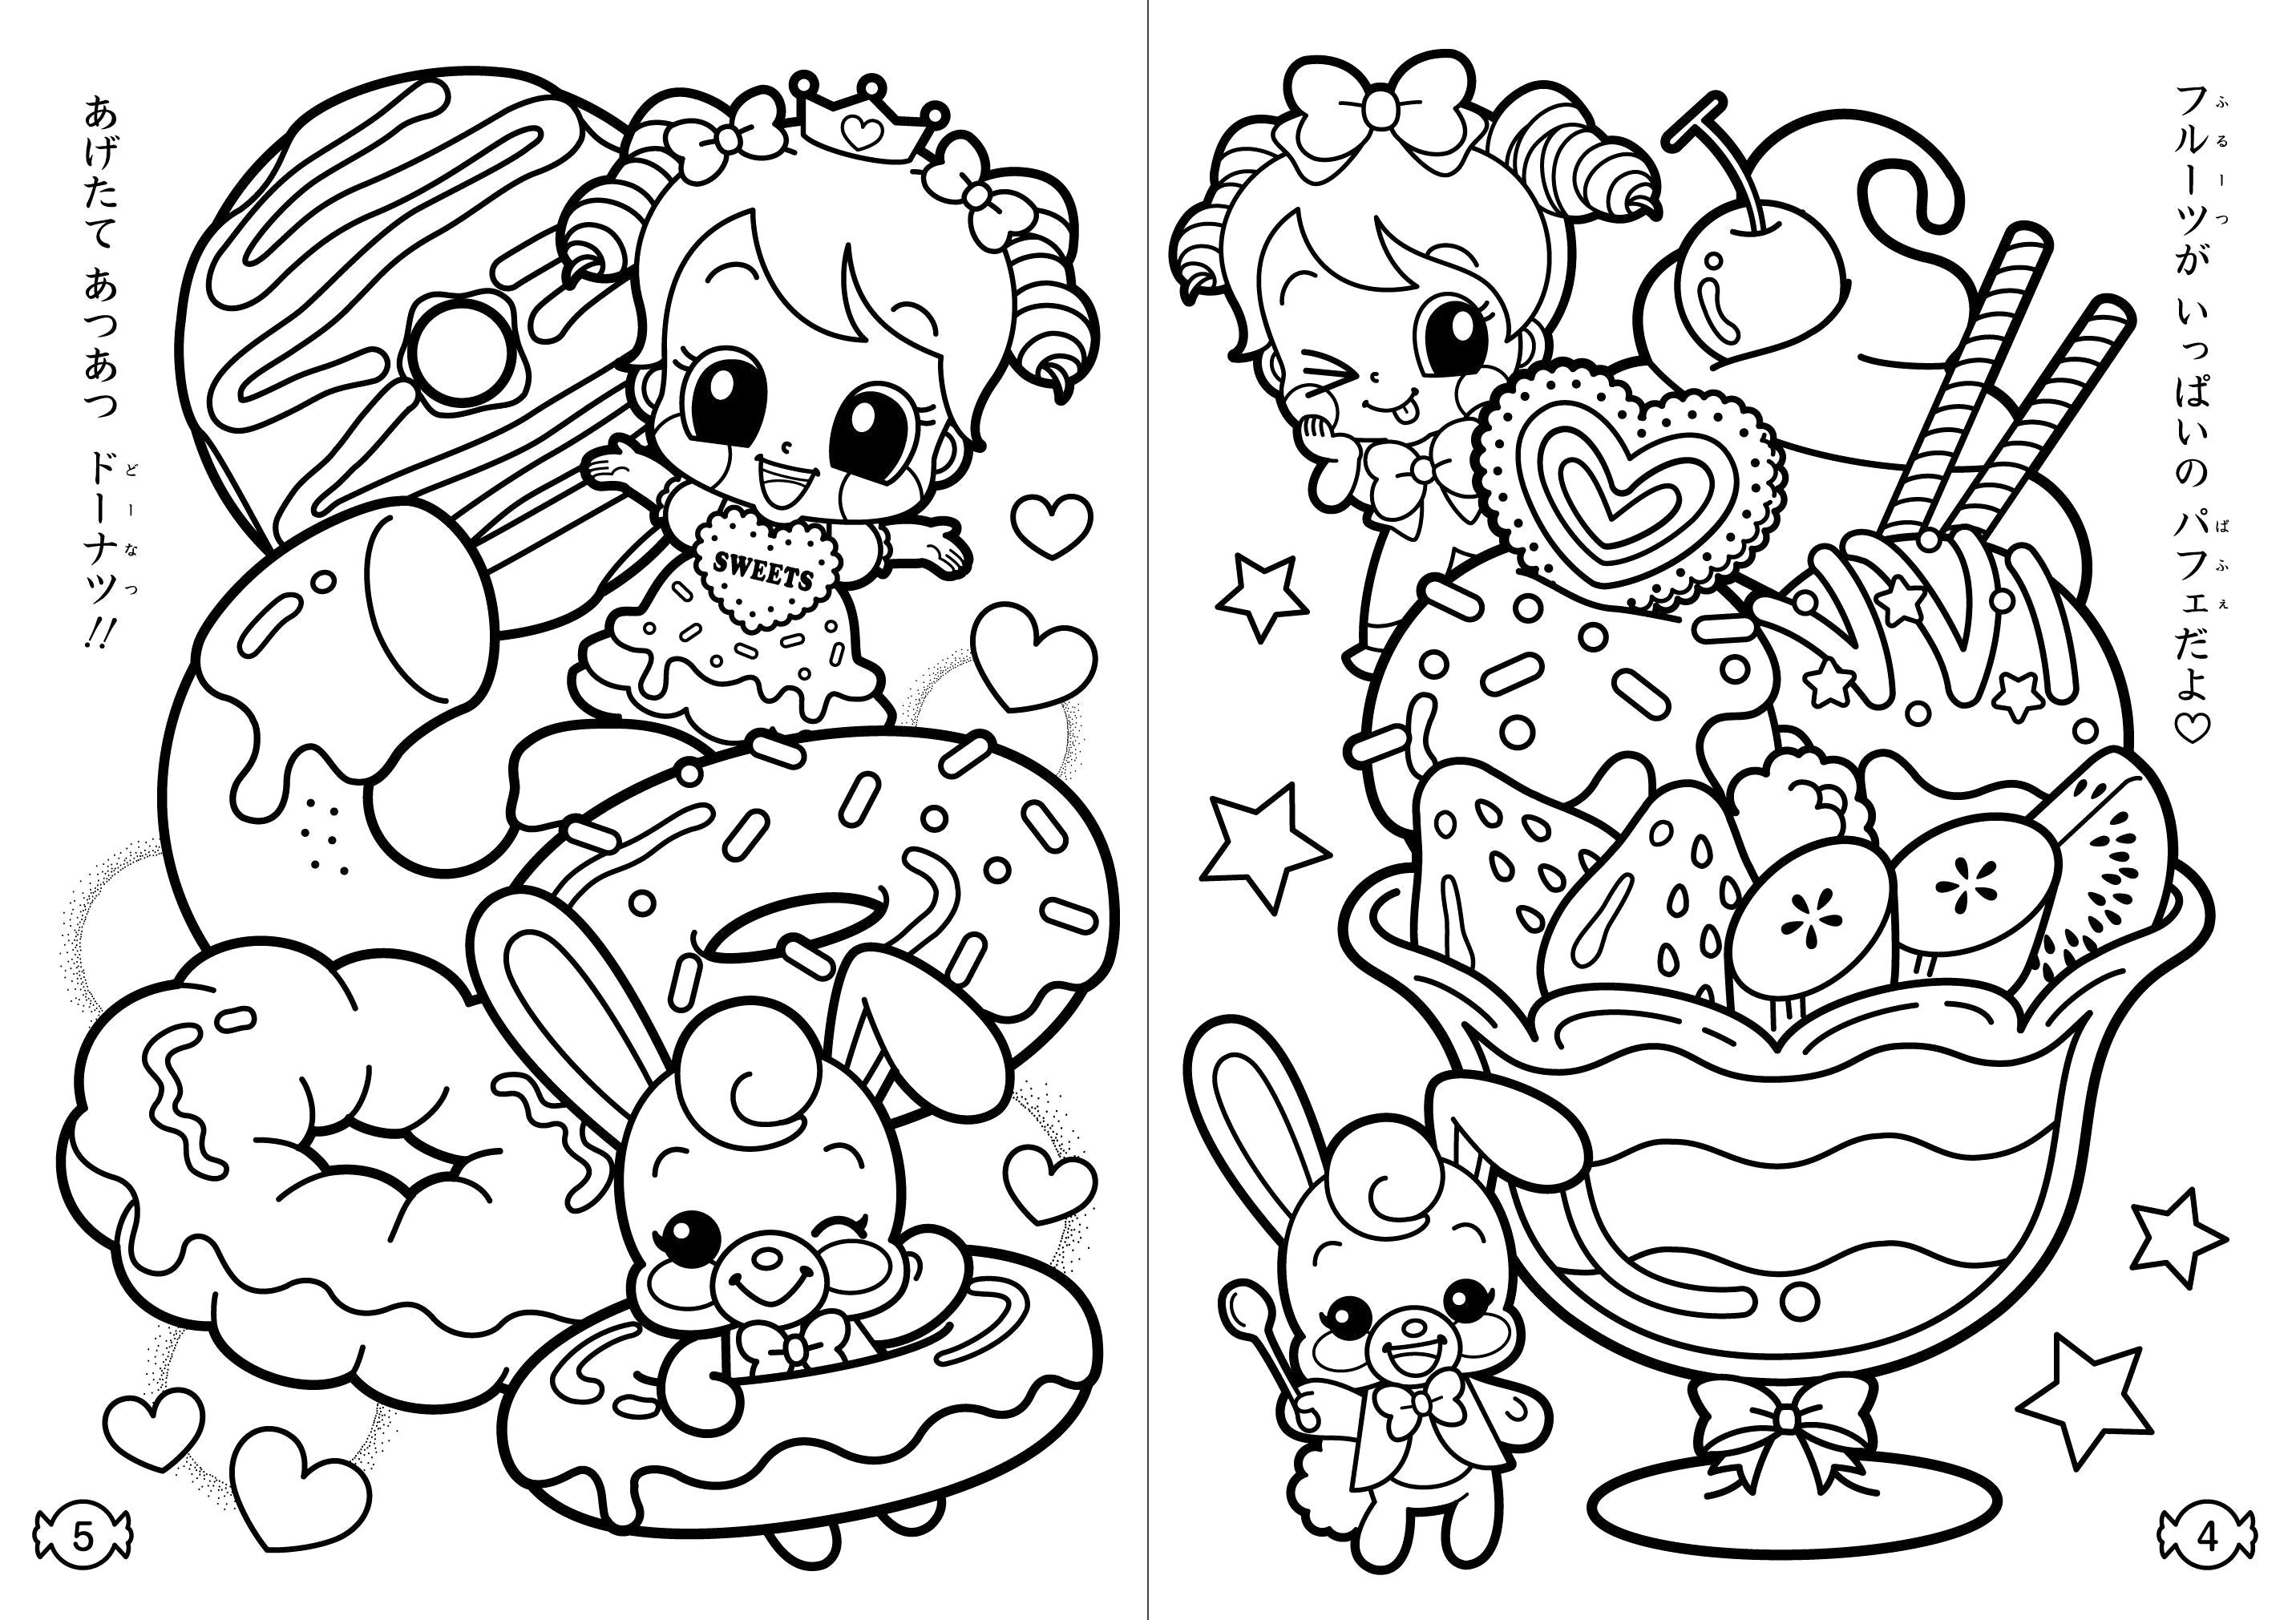 Coloring Pages Cute Food Fresh Kawaii Mr Dong 7619d8a2e3 New Of Unicorn Coloring Pages Cute Coloring Pages Disney Coloring Pages